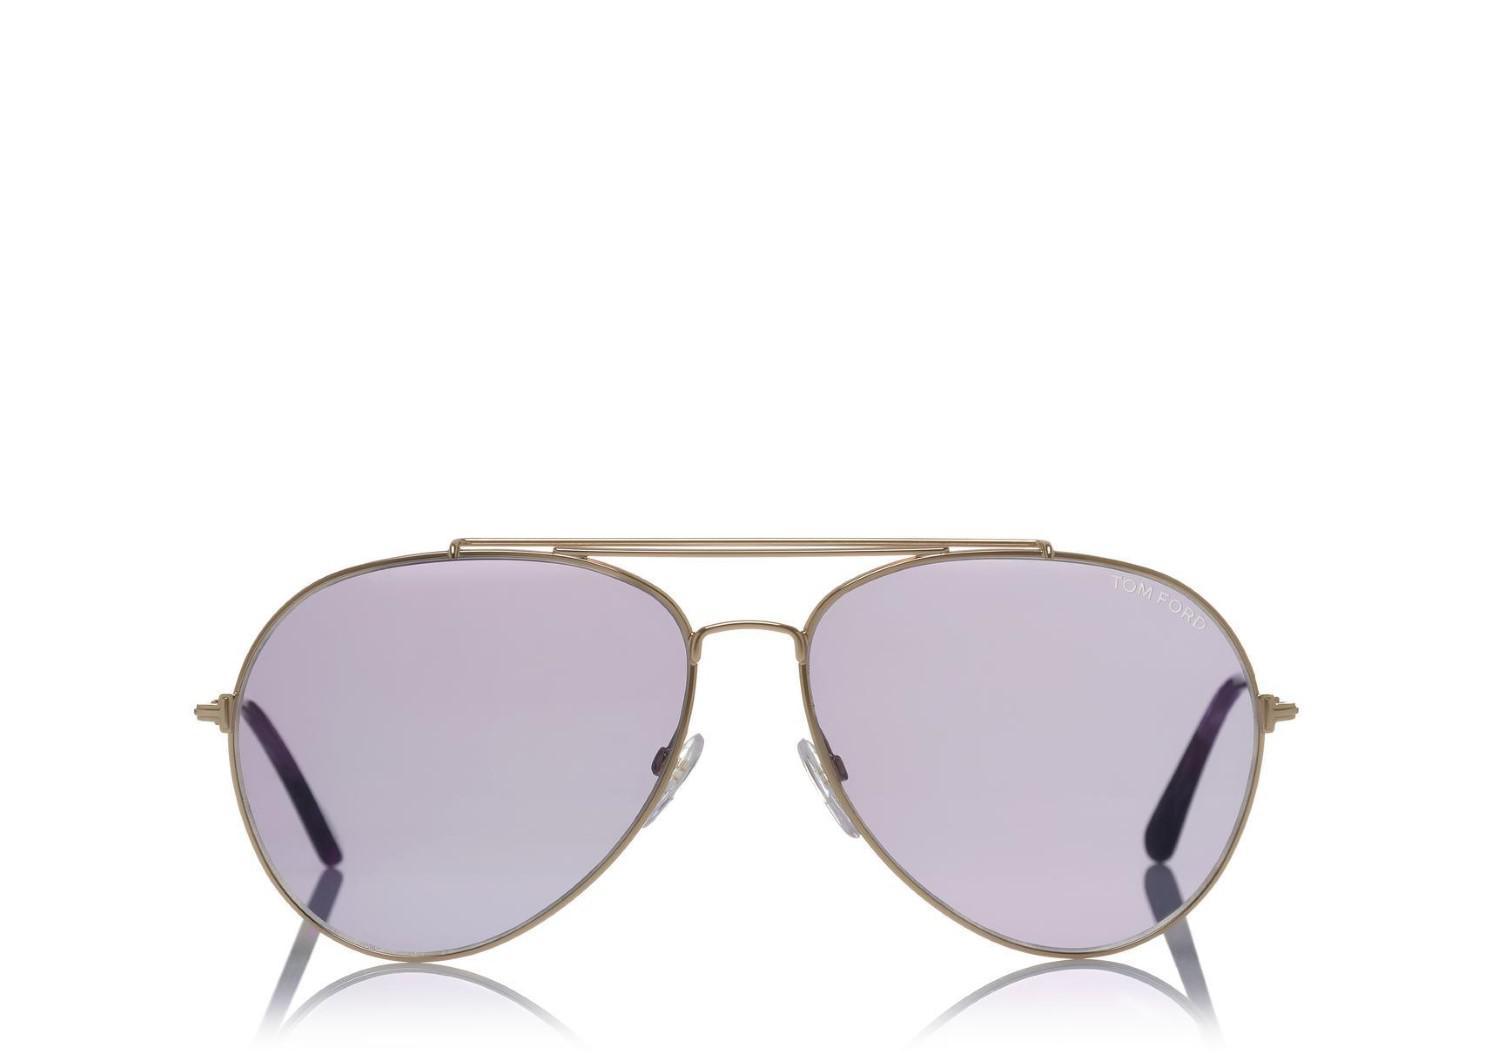 8a8f4c95a7 Lyst - Tom Ford Indiana Tf 497 28z Rose Goldtone Sunglasses Aviator ...